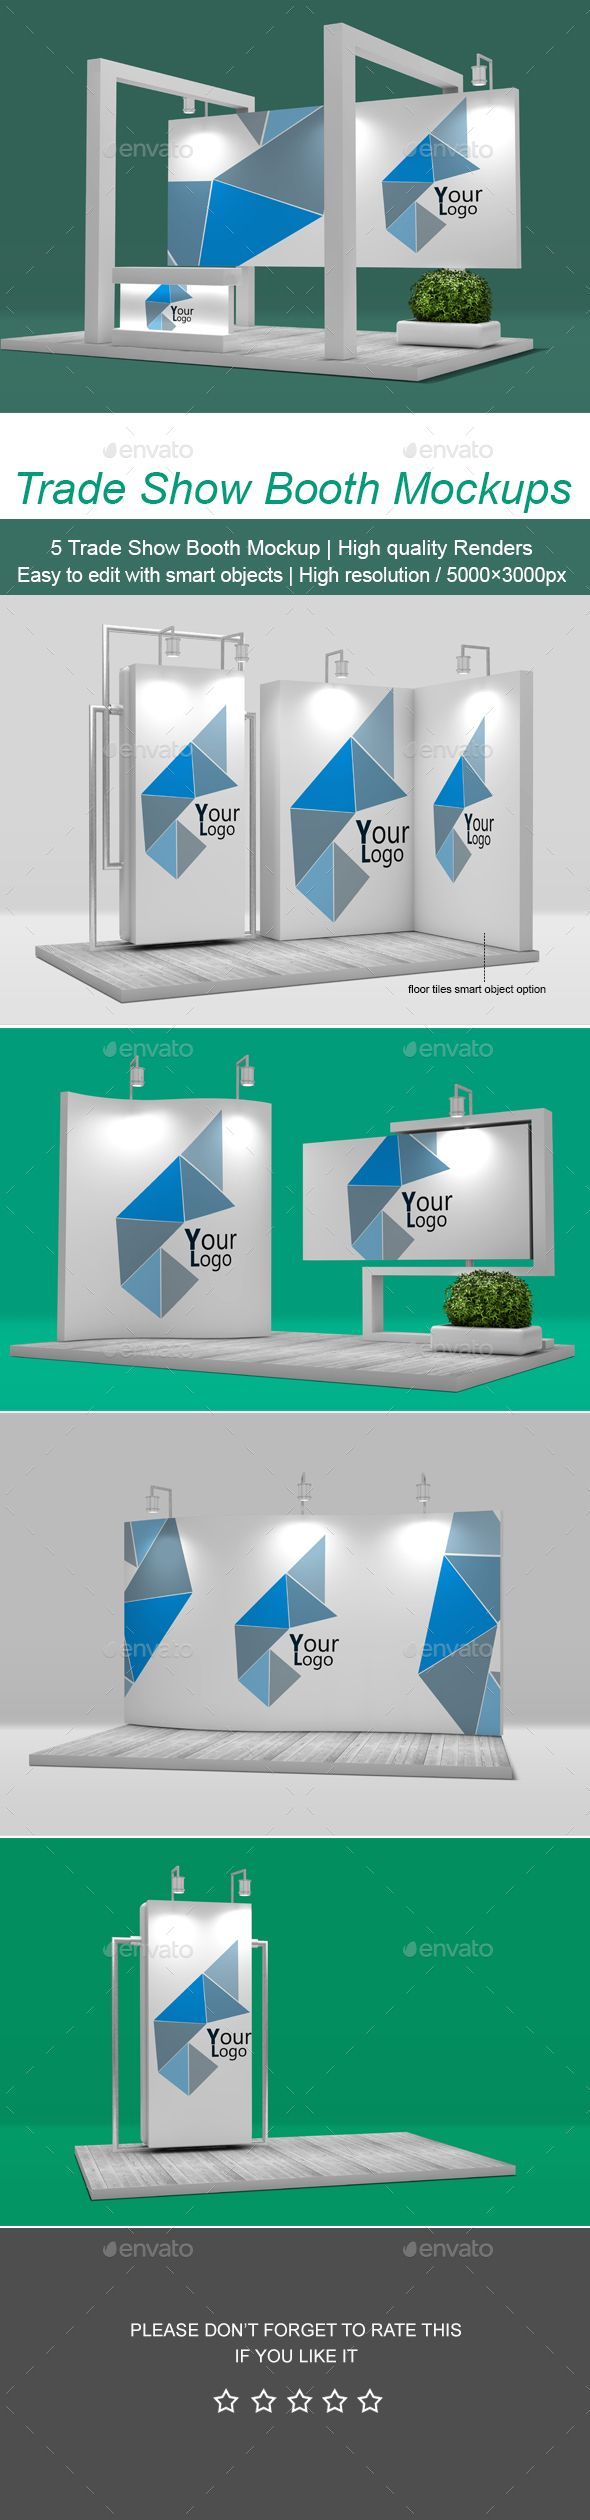 Exhibition Booth Mockup : Trade show booth mockup pinned by digitalphaser u purity